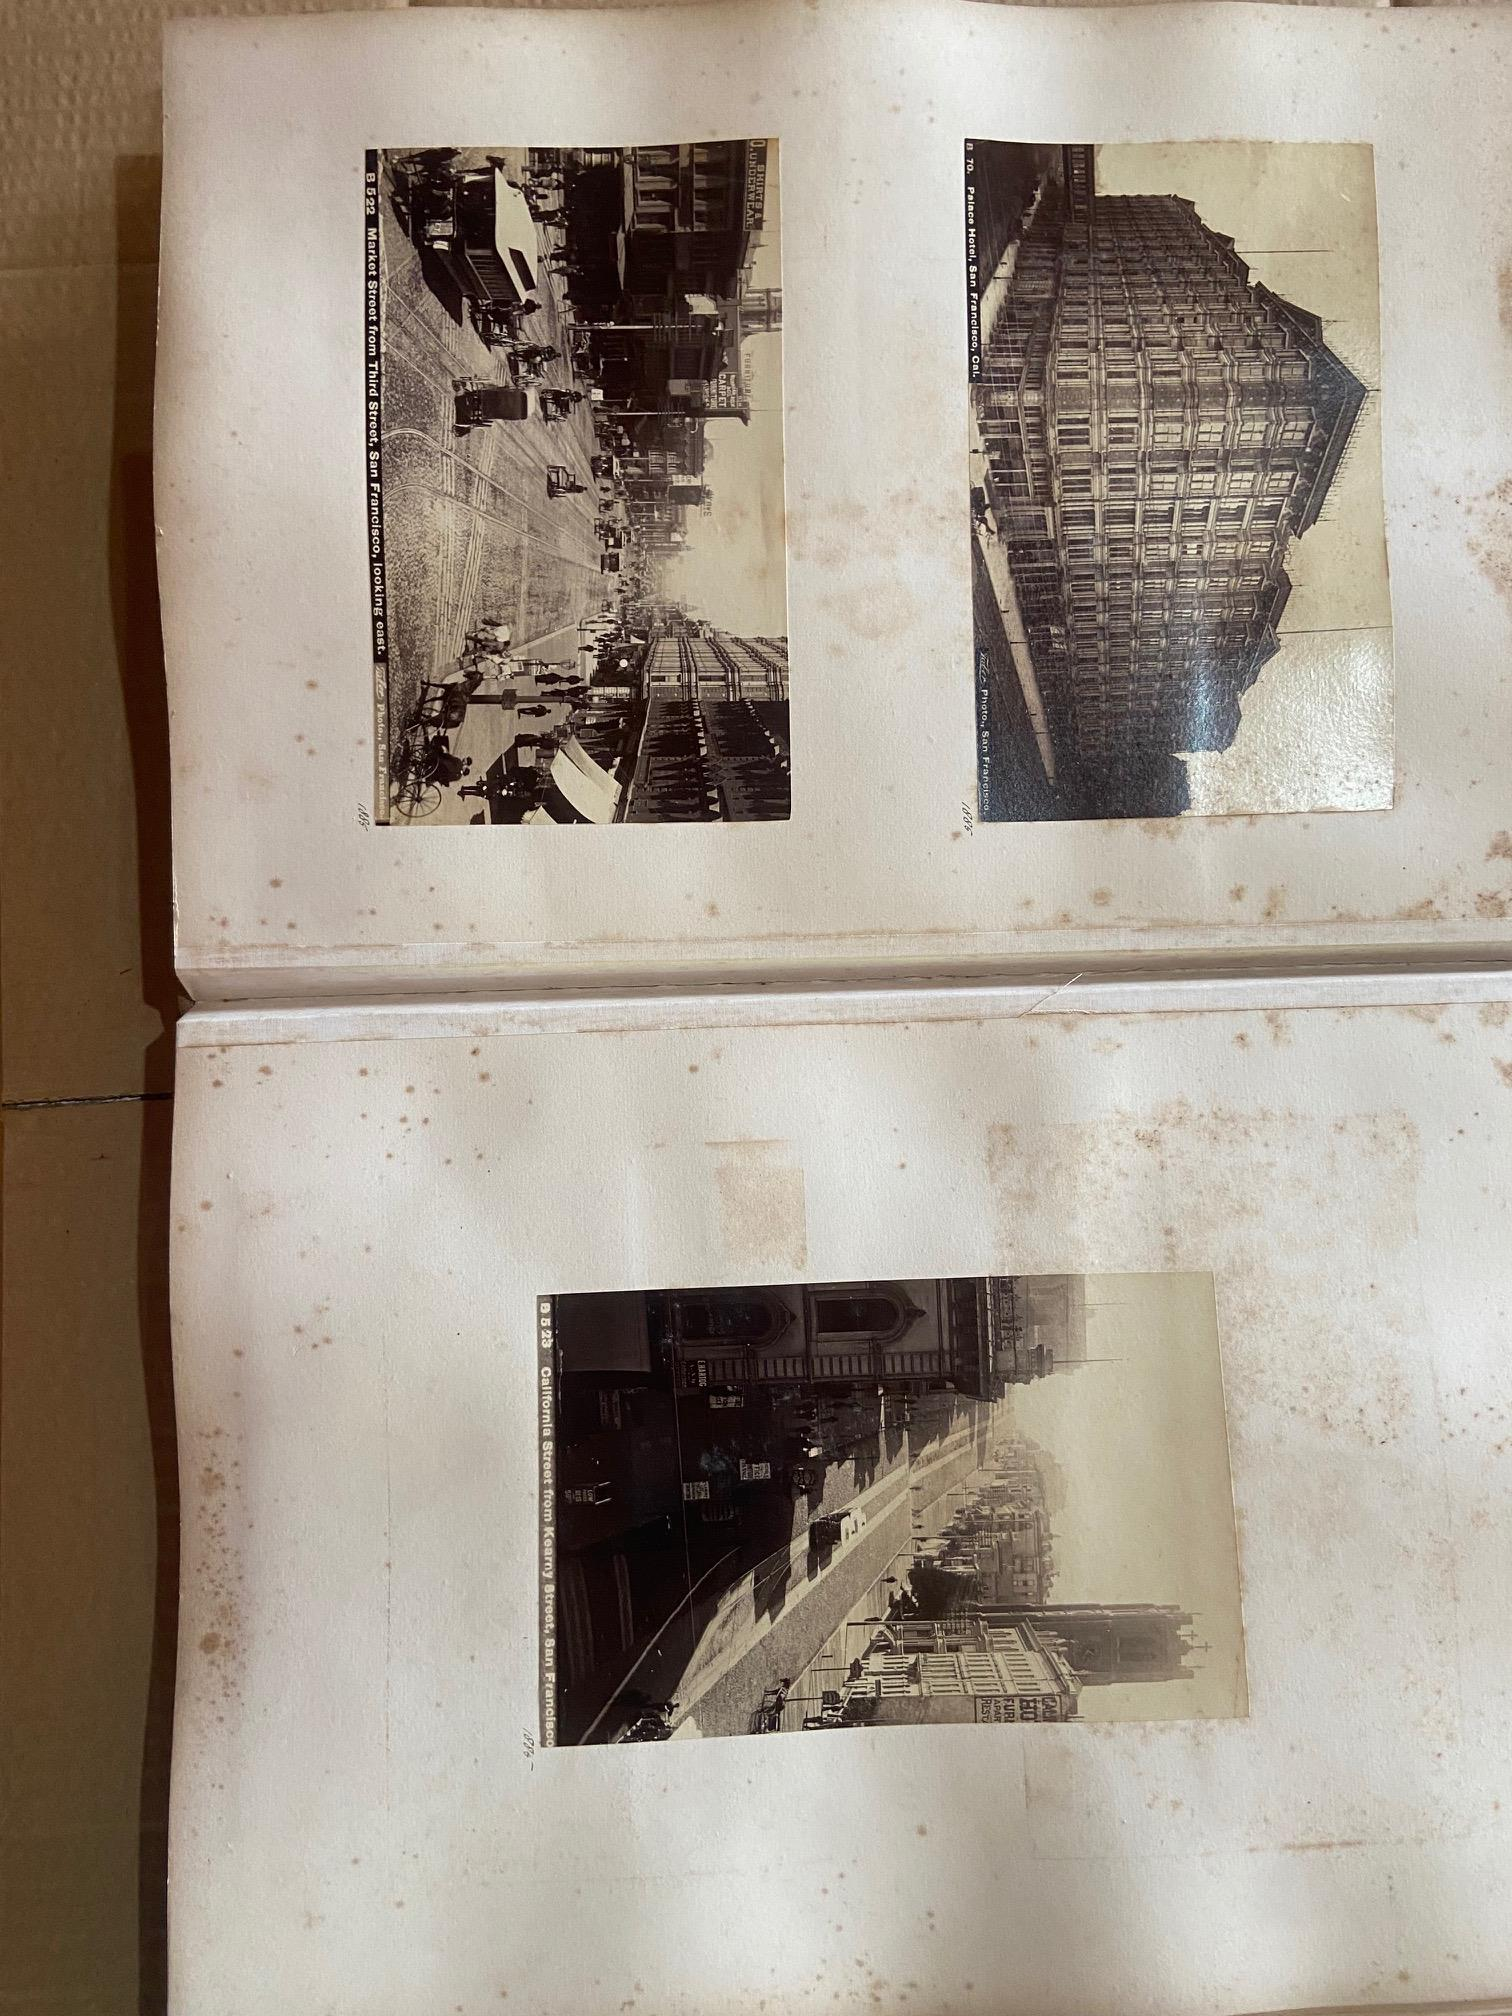 Photographs: Two large folio Albums of Photographs, each c. 1870 - 1890's. One Album contains - Image 18 of 31